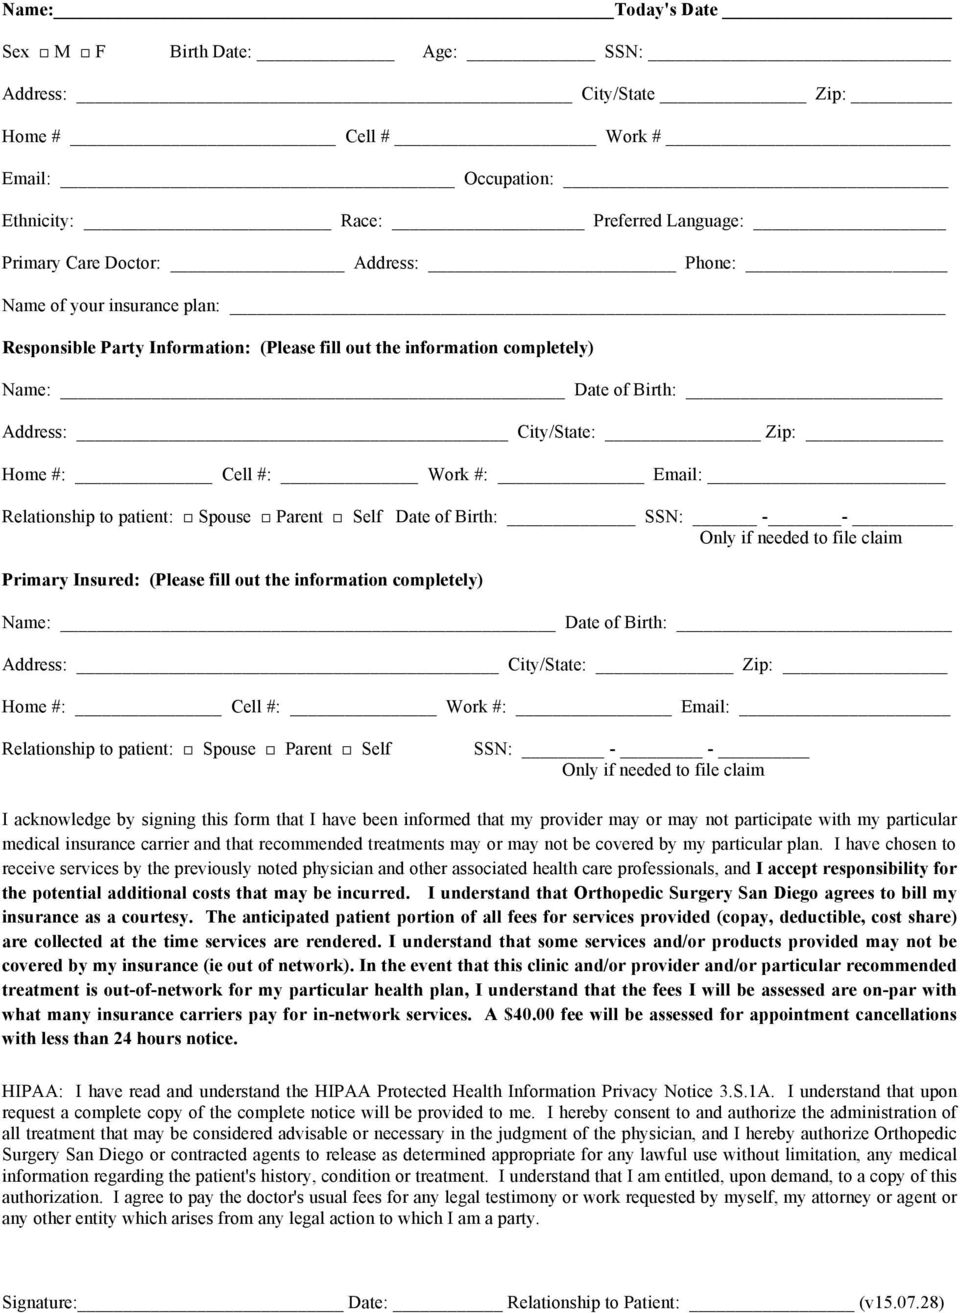 Spouse Parent Self Date of Birth: SSN: - - Only if needed to file claim Primary Insured: (Please fill out the information completely) Name: Date of Birth: Address: City/State: Zip: Home #: Cell #: